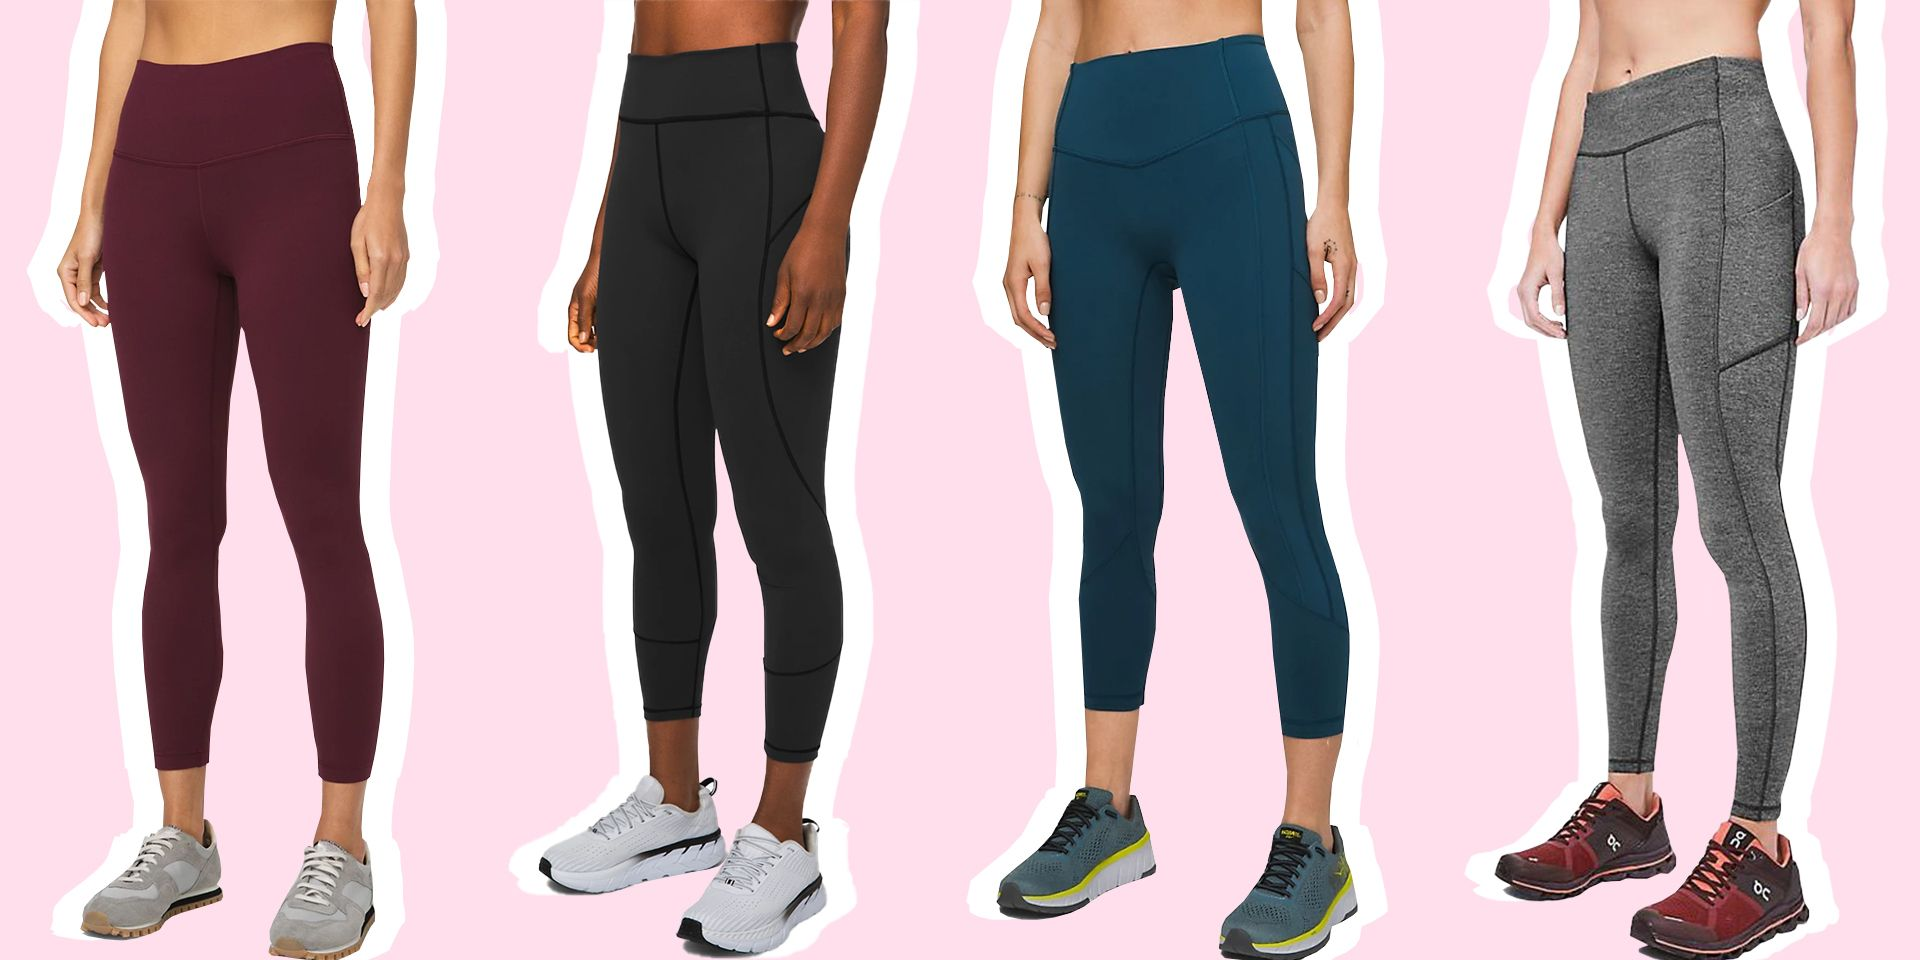 Best Lululemon Leggings Why Lululemon Is So Expensive And What To Buy